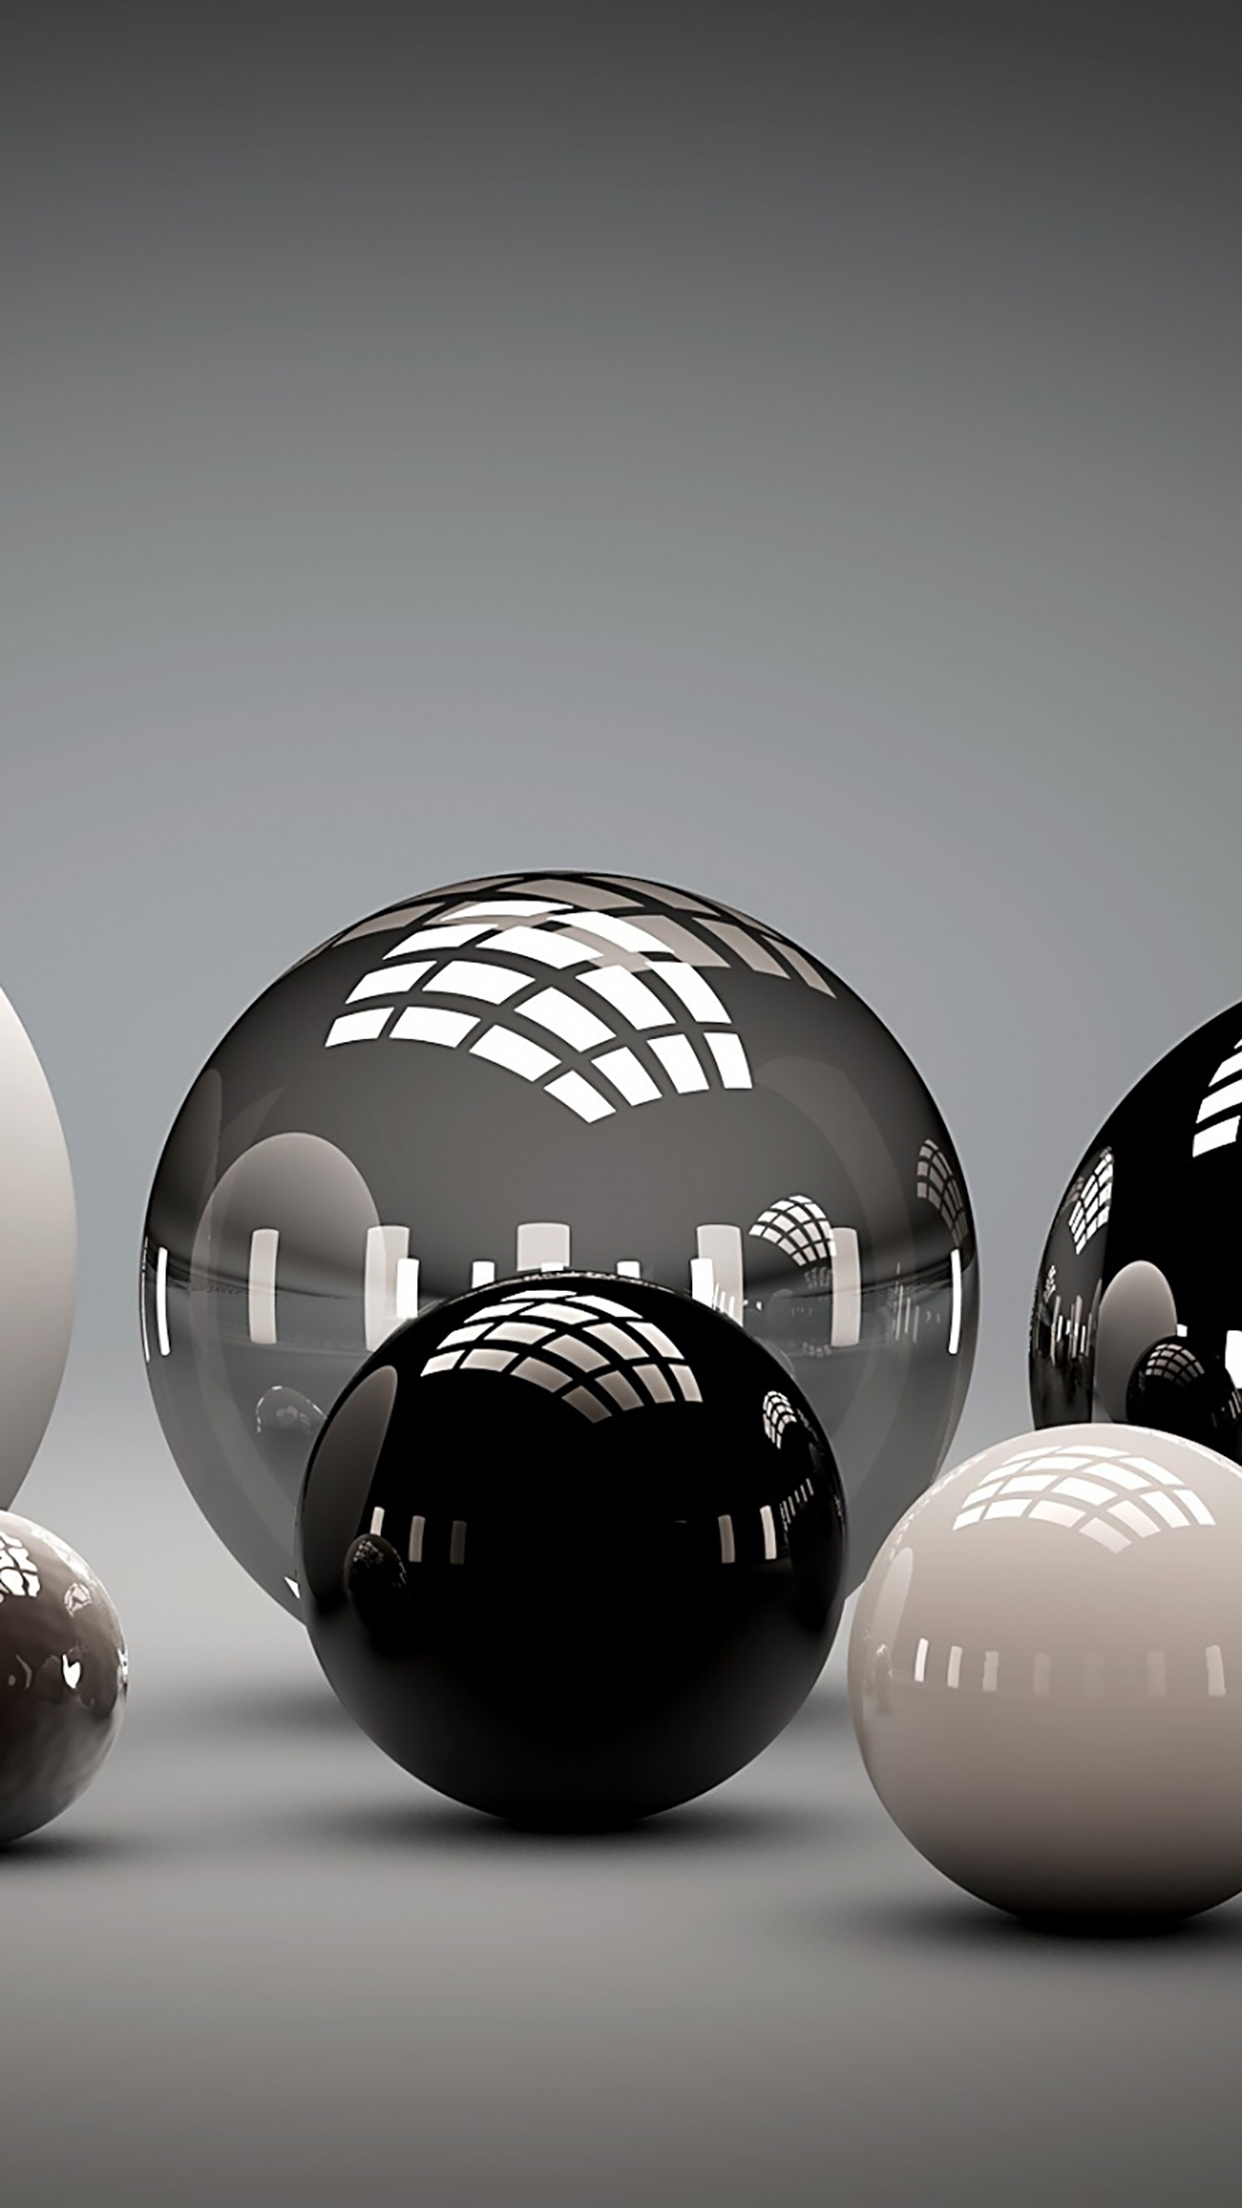 Marbles Black And White 3Wallpapers iPhone Parallax Billes : Black And White